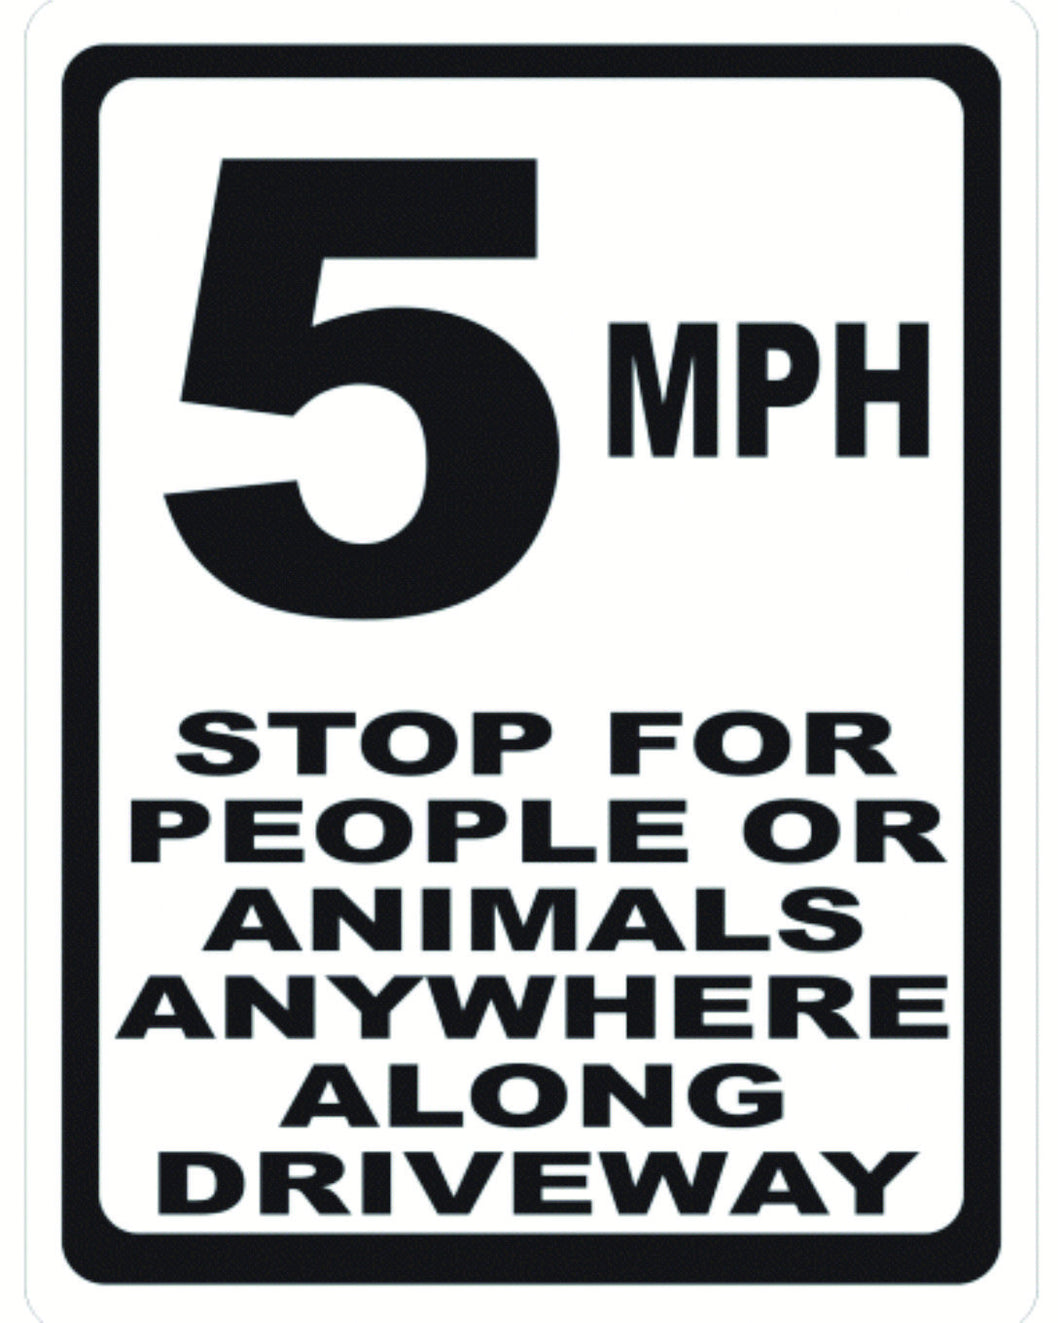 5 MPH Stop For People and Animals Anywhere Along the Driveway Sign - Signs & Decals by SalaGraphics